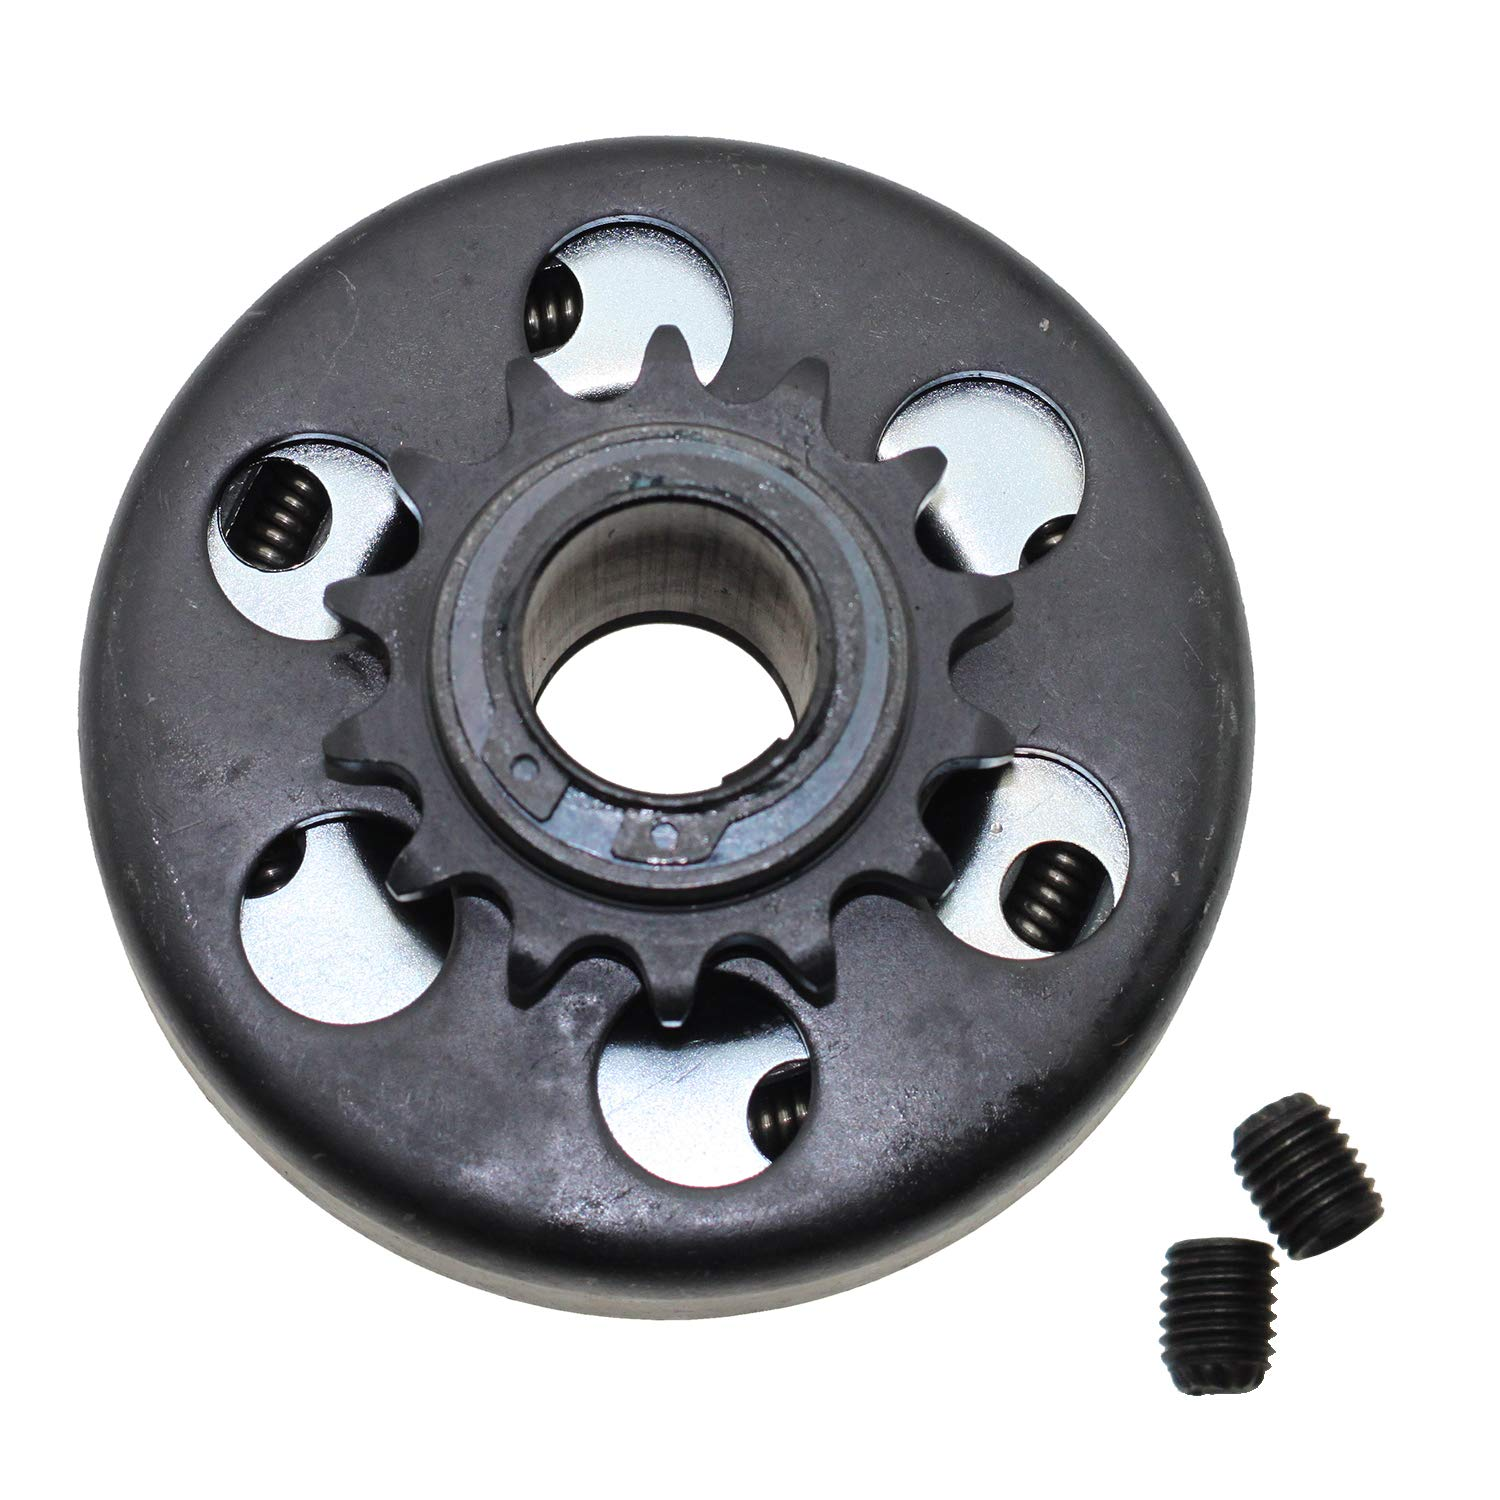 Antanker Replacement Centrifugal Go Kart Clutch 1'' Bore 14T 14 Tooth Fits 40/41/420 Chain for Mini Bike Go Kart Engine by Antanker